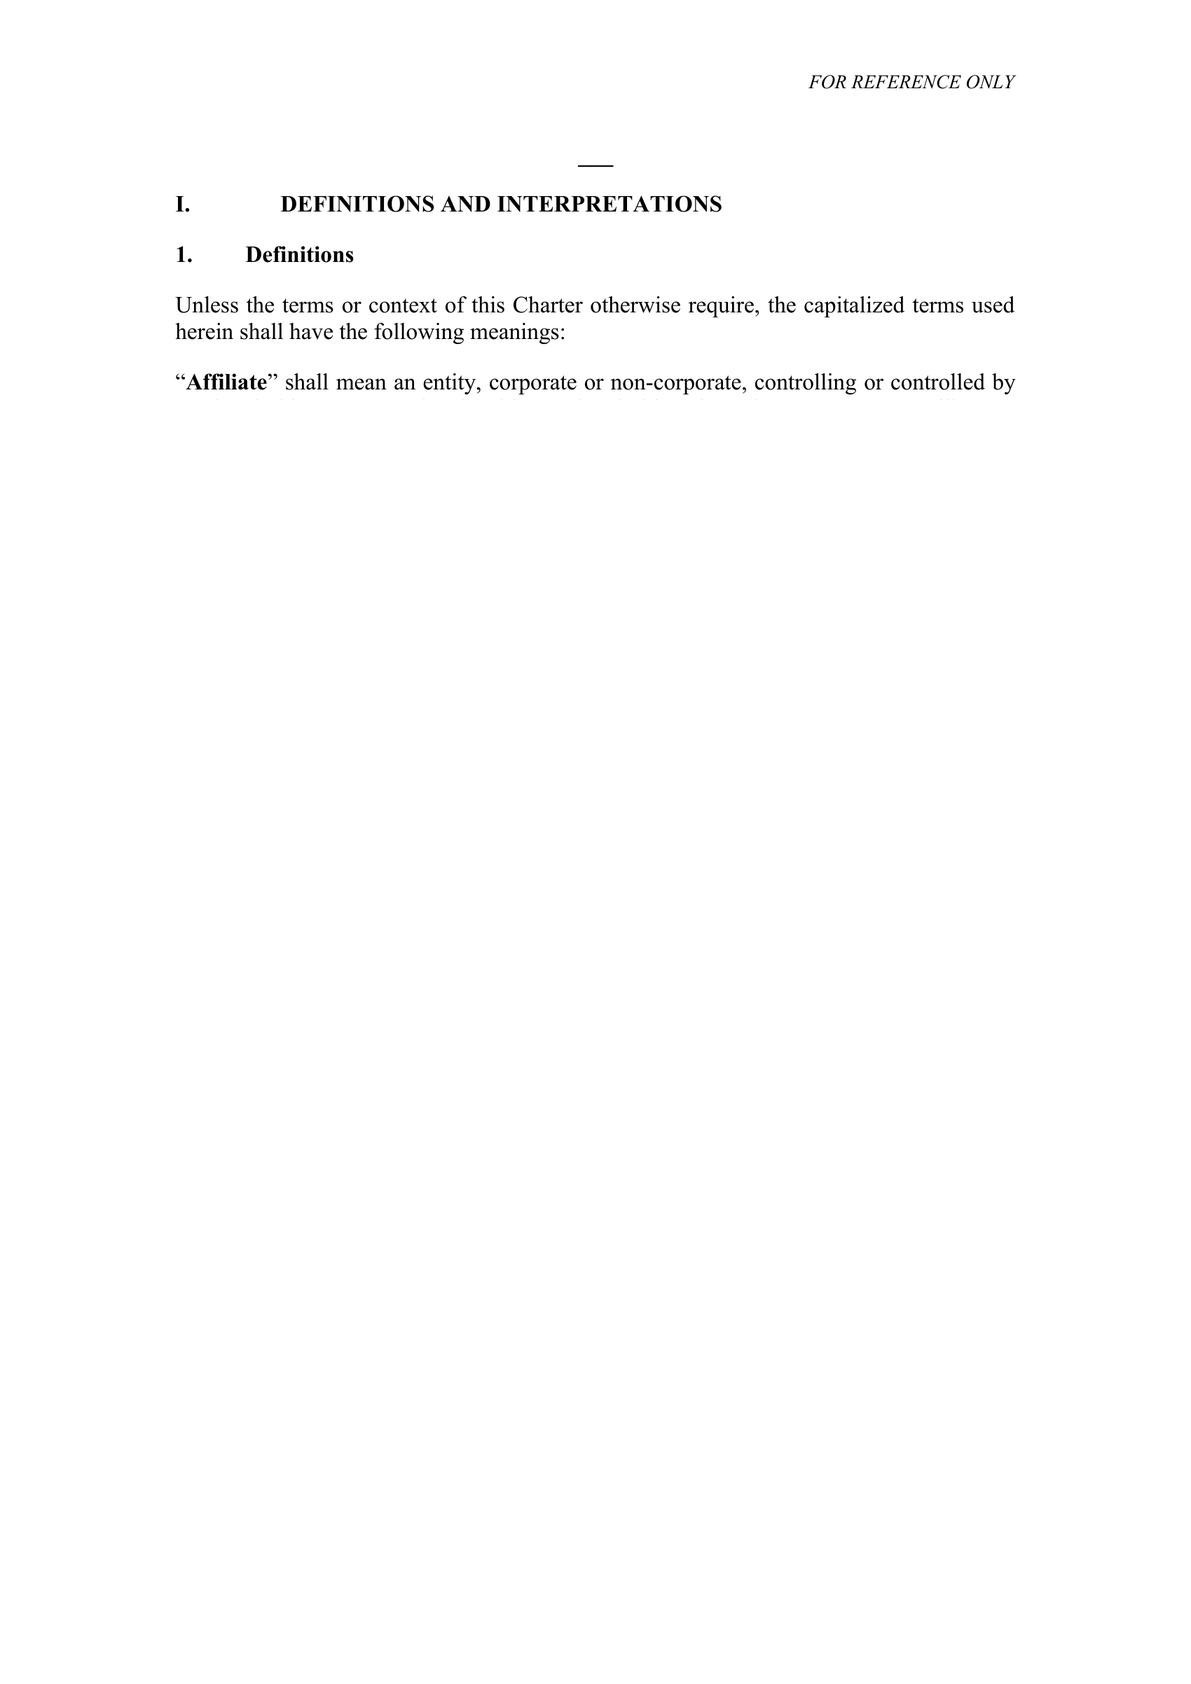 Joint stock company charter template in Vietnam (English)-4